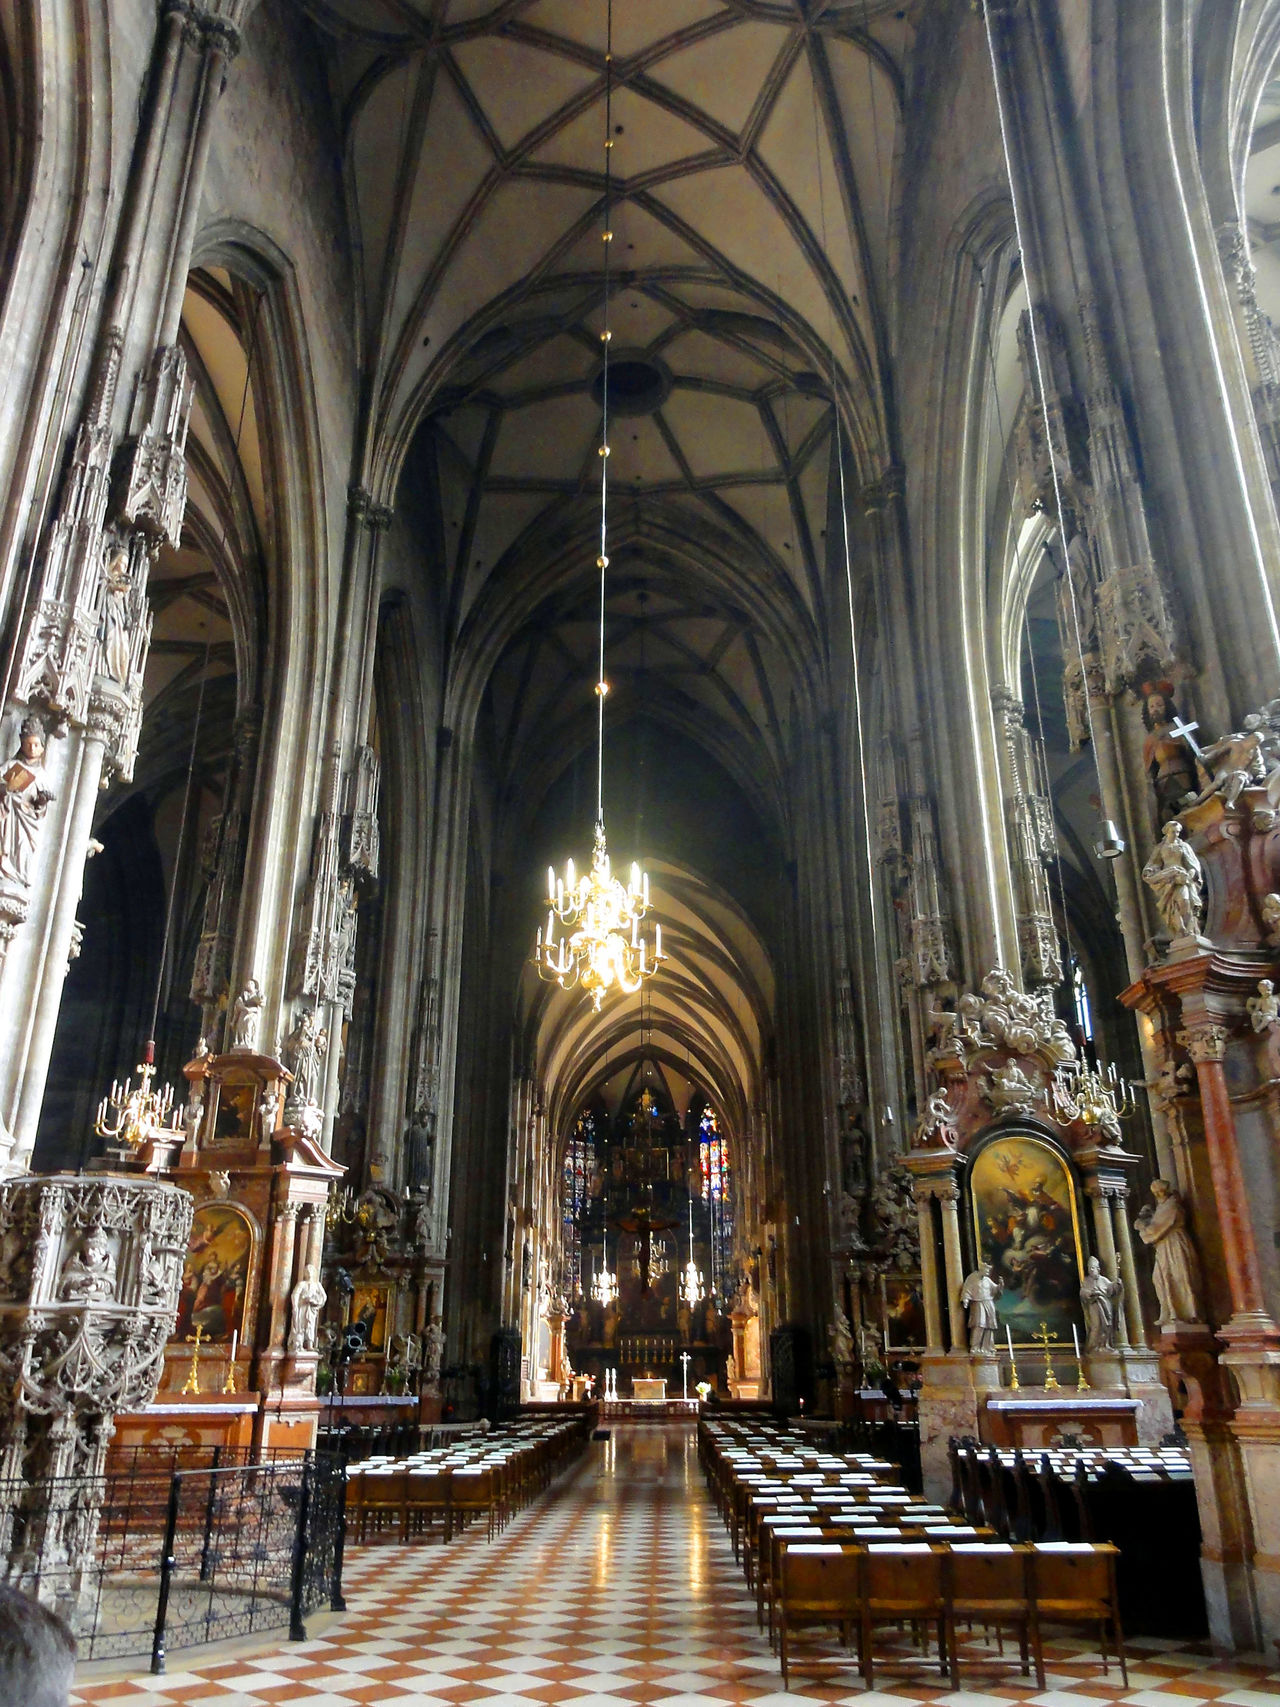 Chatedral interior, Vienna Architecture Art Catedral Church Europe Trip History Place Of Worship Religious Architecture Religious Art Travel Travel Destinations Travel Photography Vacation Destination Vienna Wien